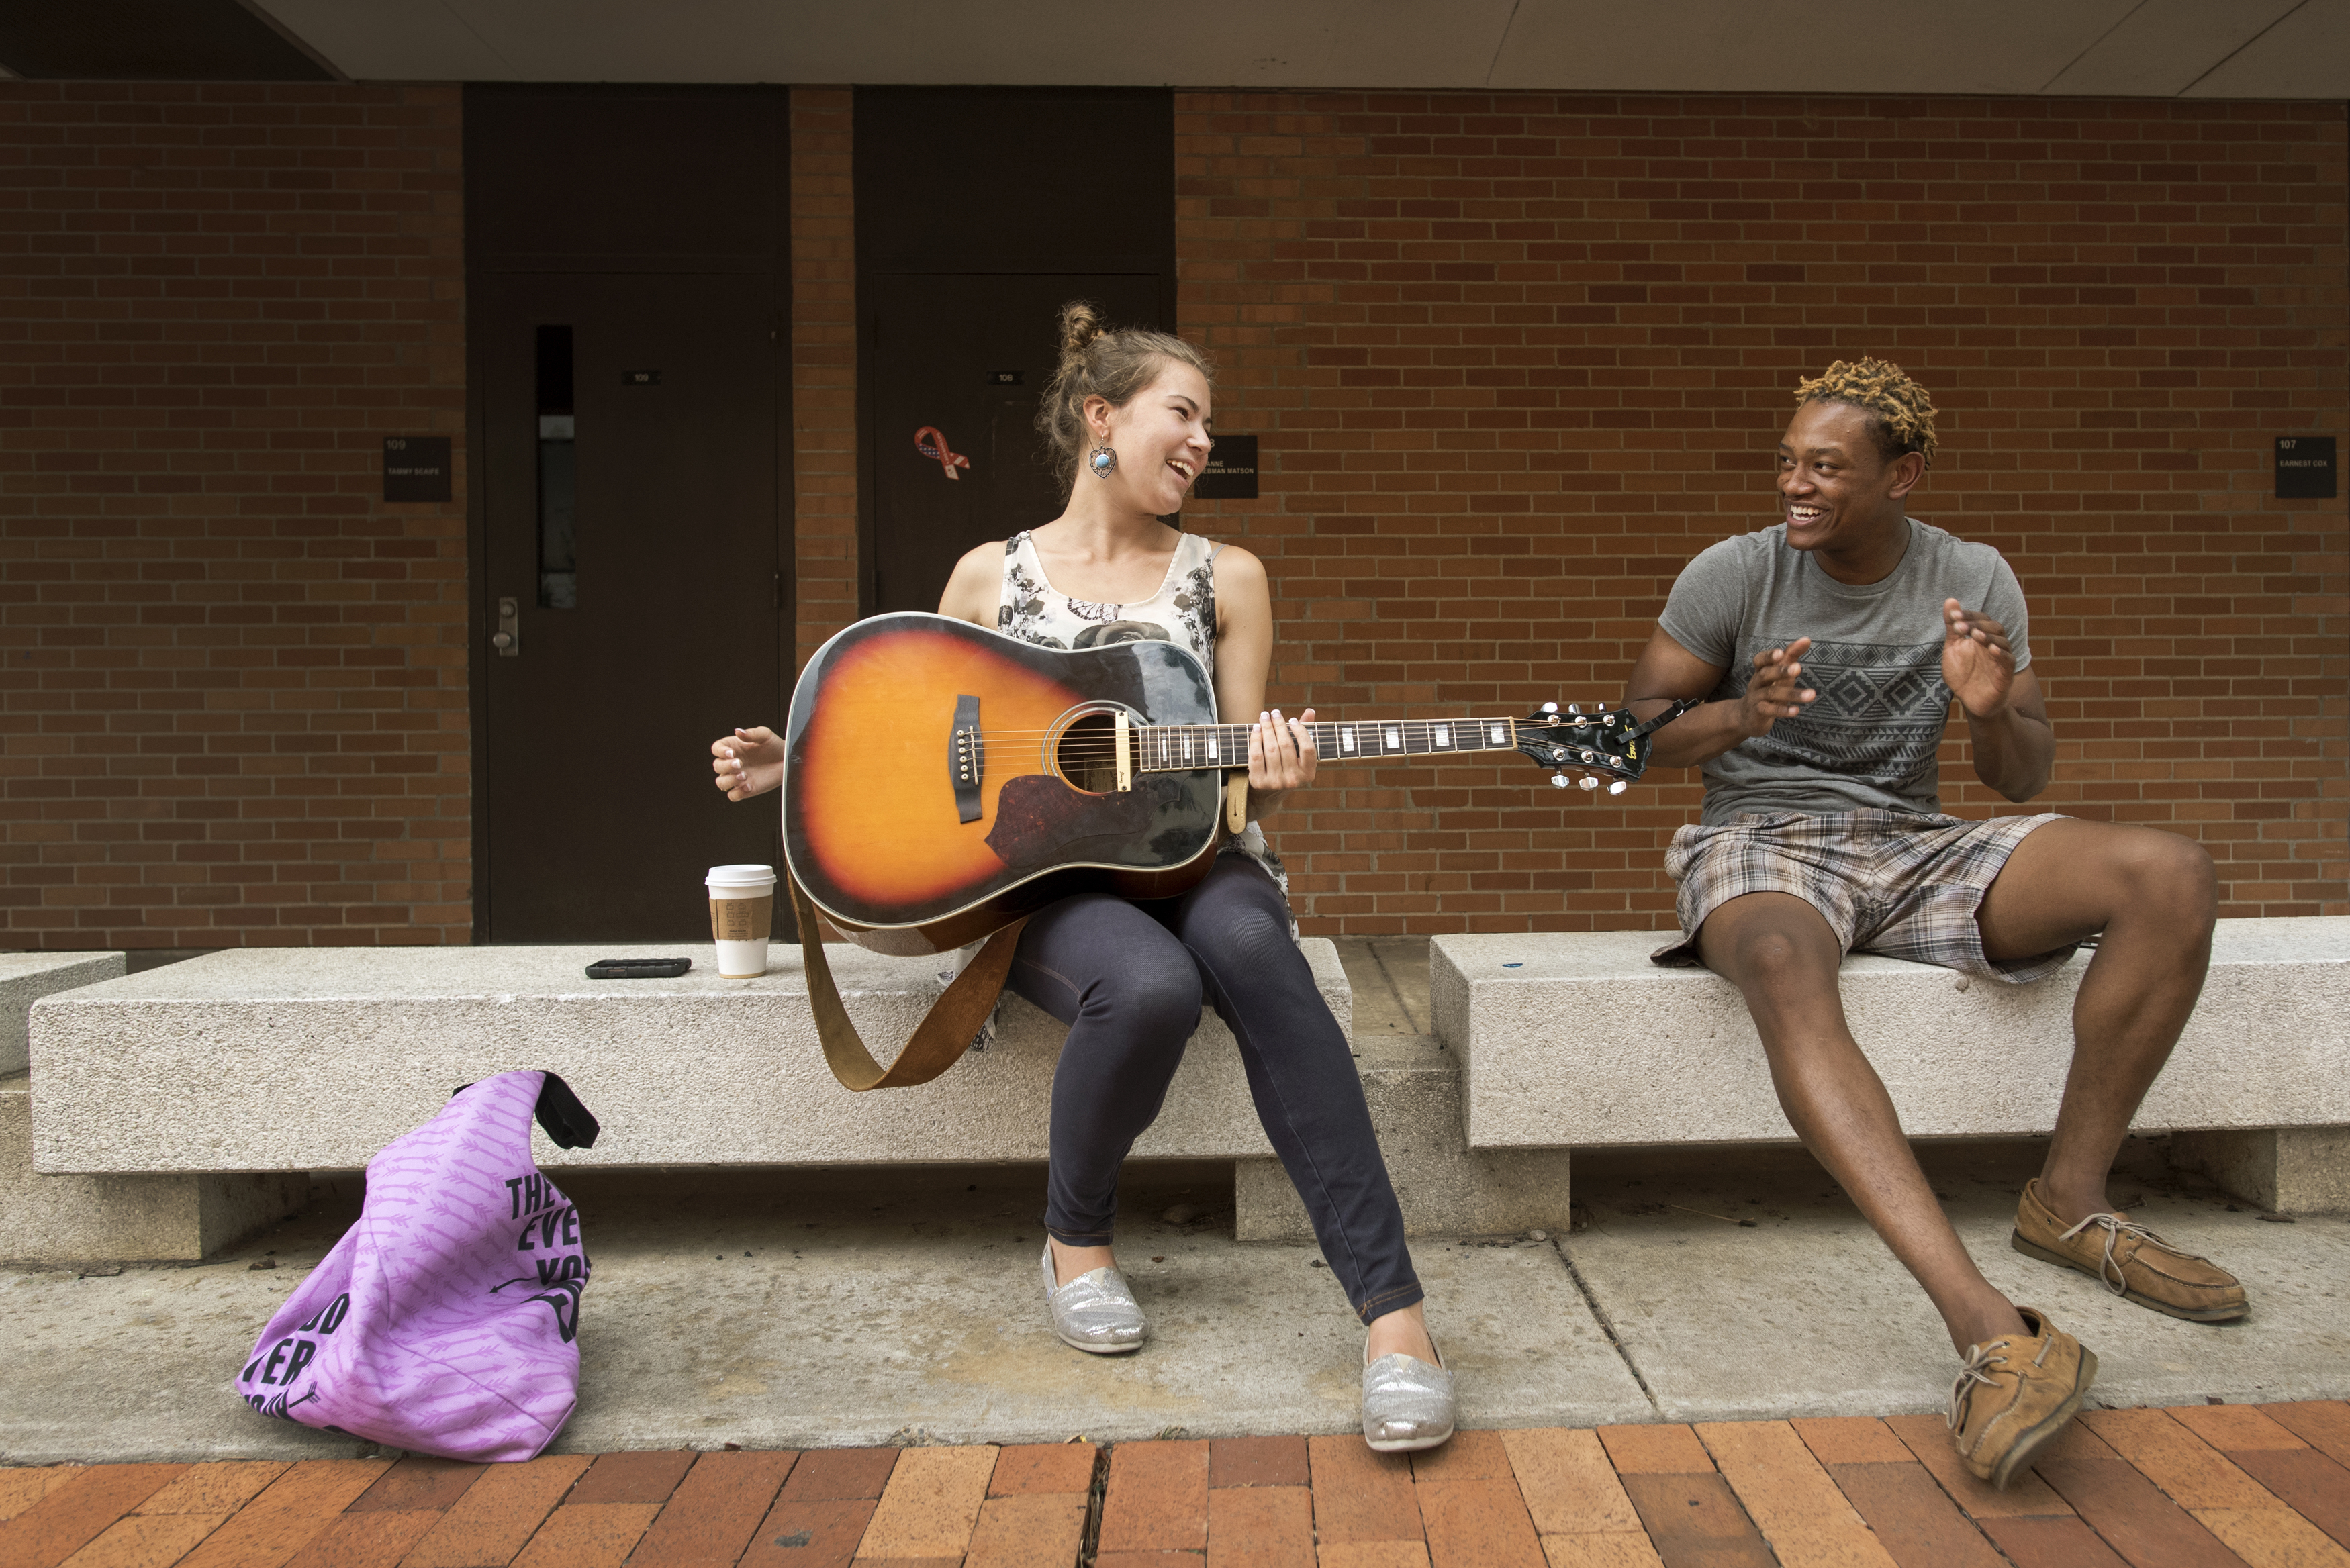 Students play guitar and sing near the Old Student Union on September 16, 2015.